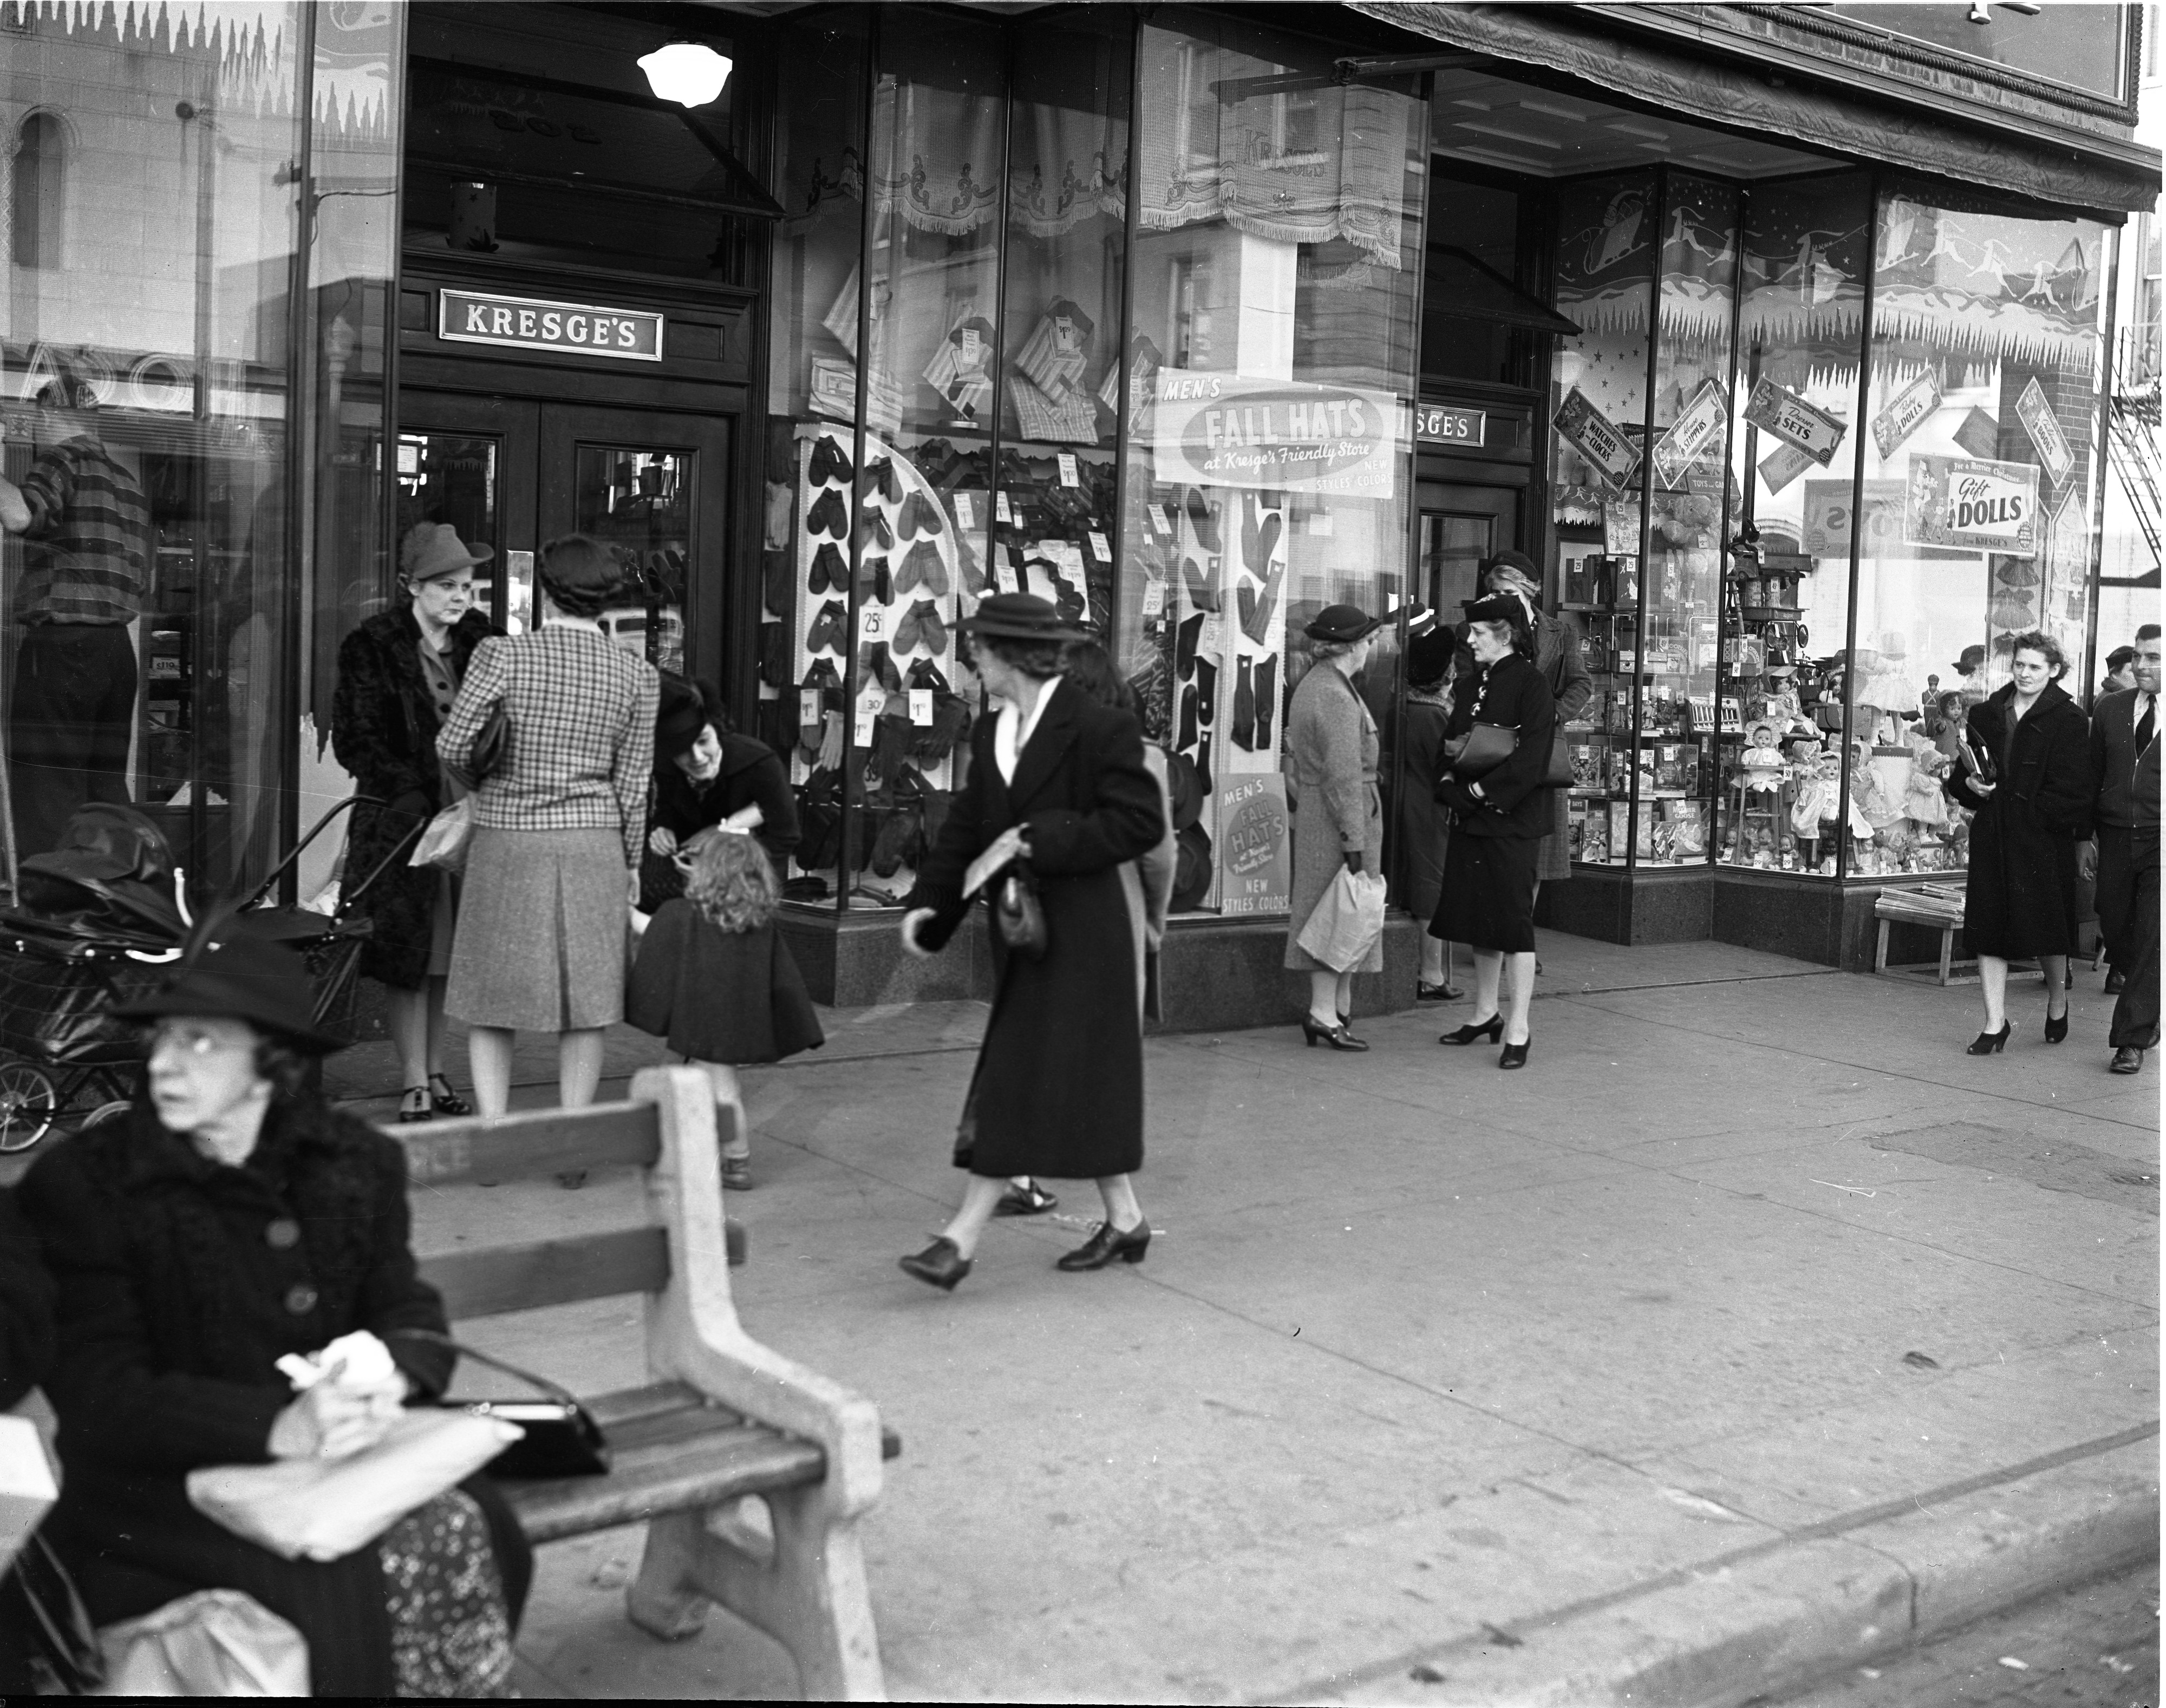 Shoppers In Front Of Kresge's, 200 S Main St, November 1941 image